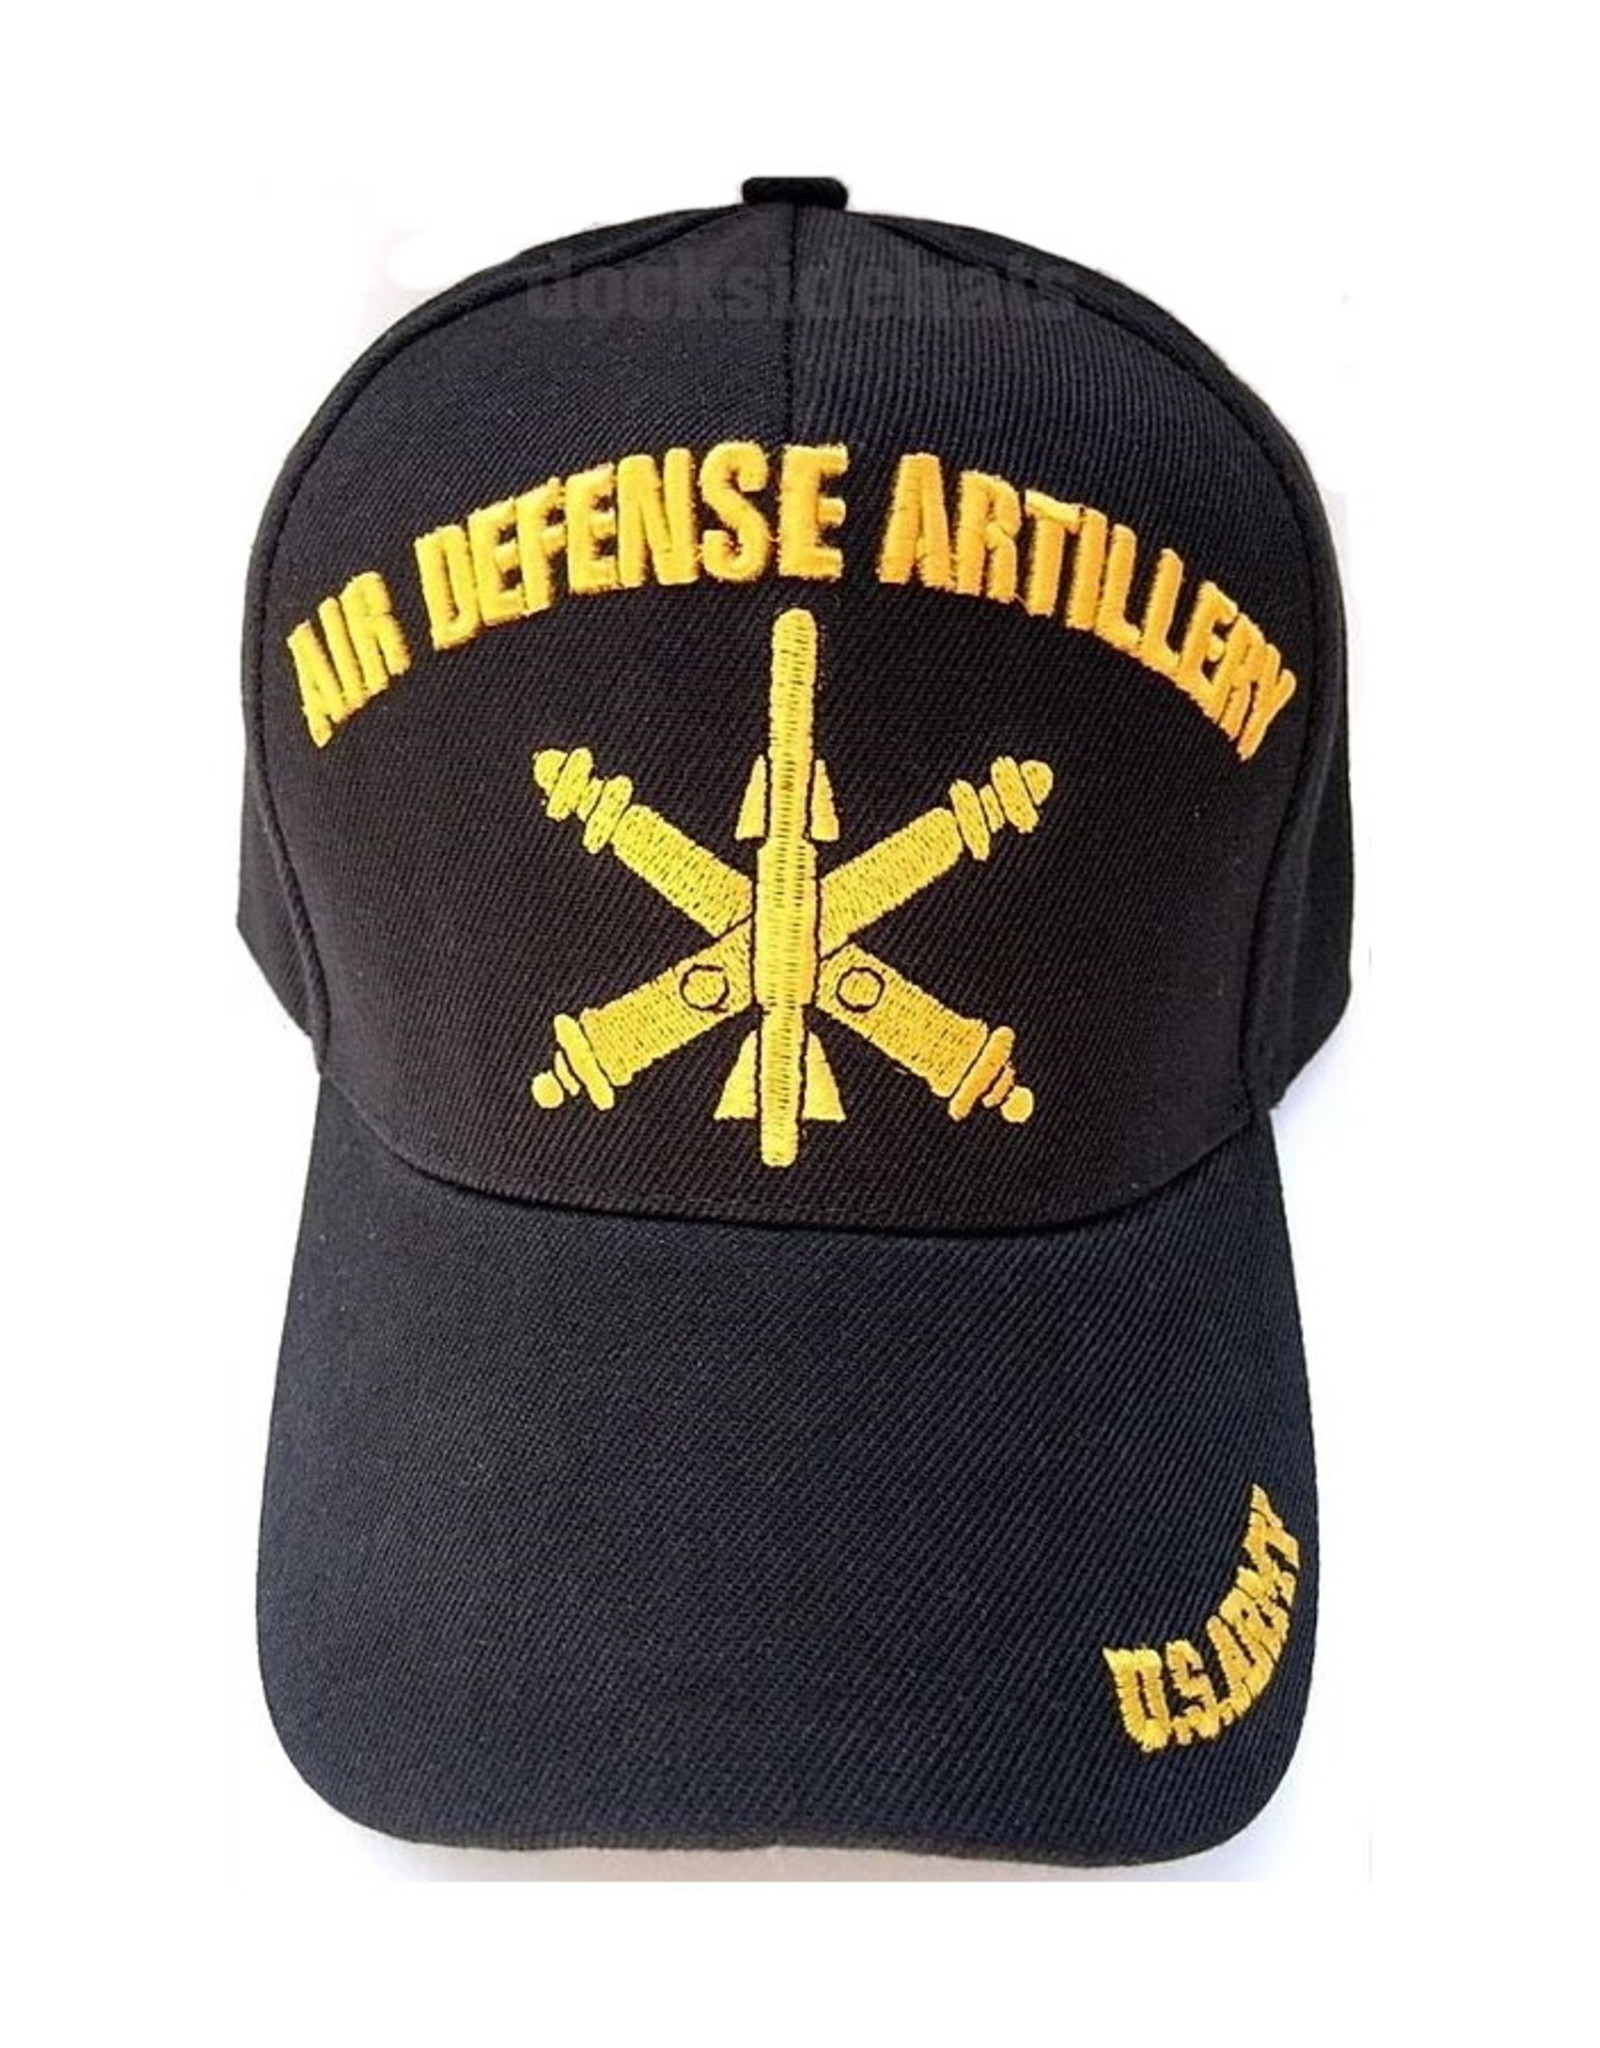 MidMil Army Air Defense Artillery Hat with Emblem Black